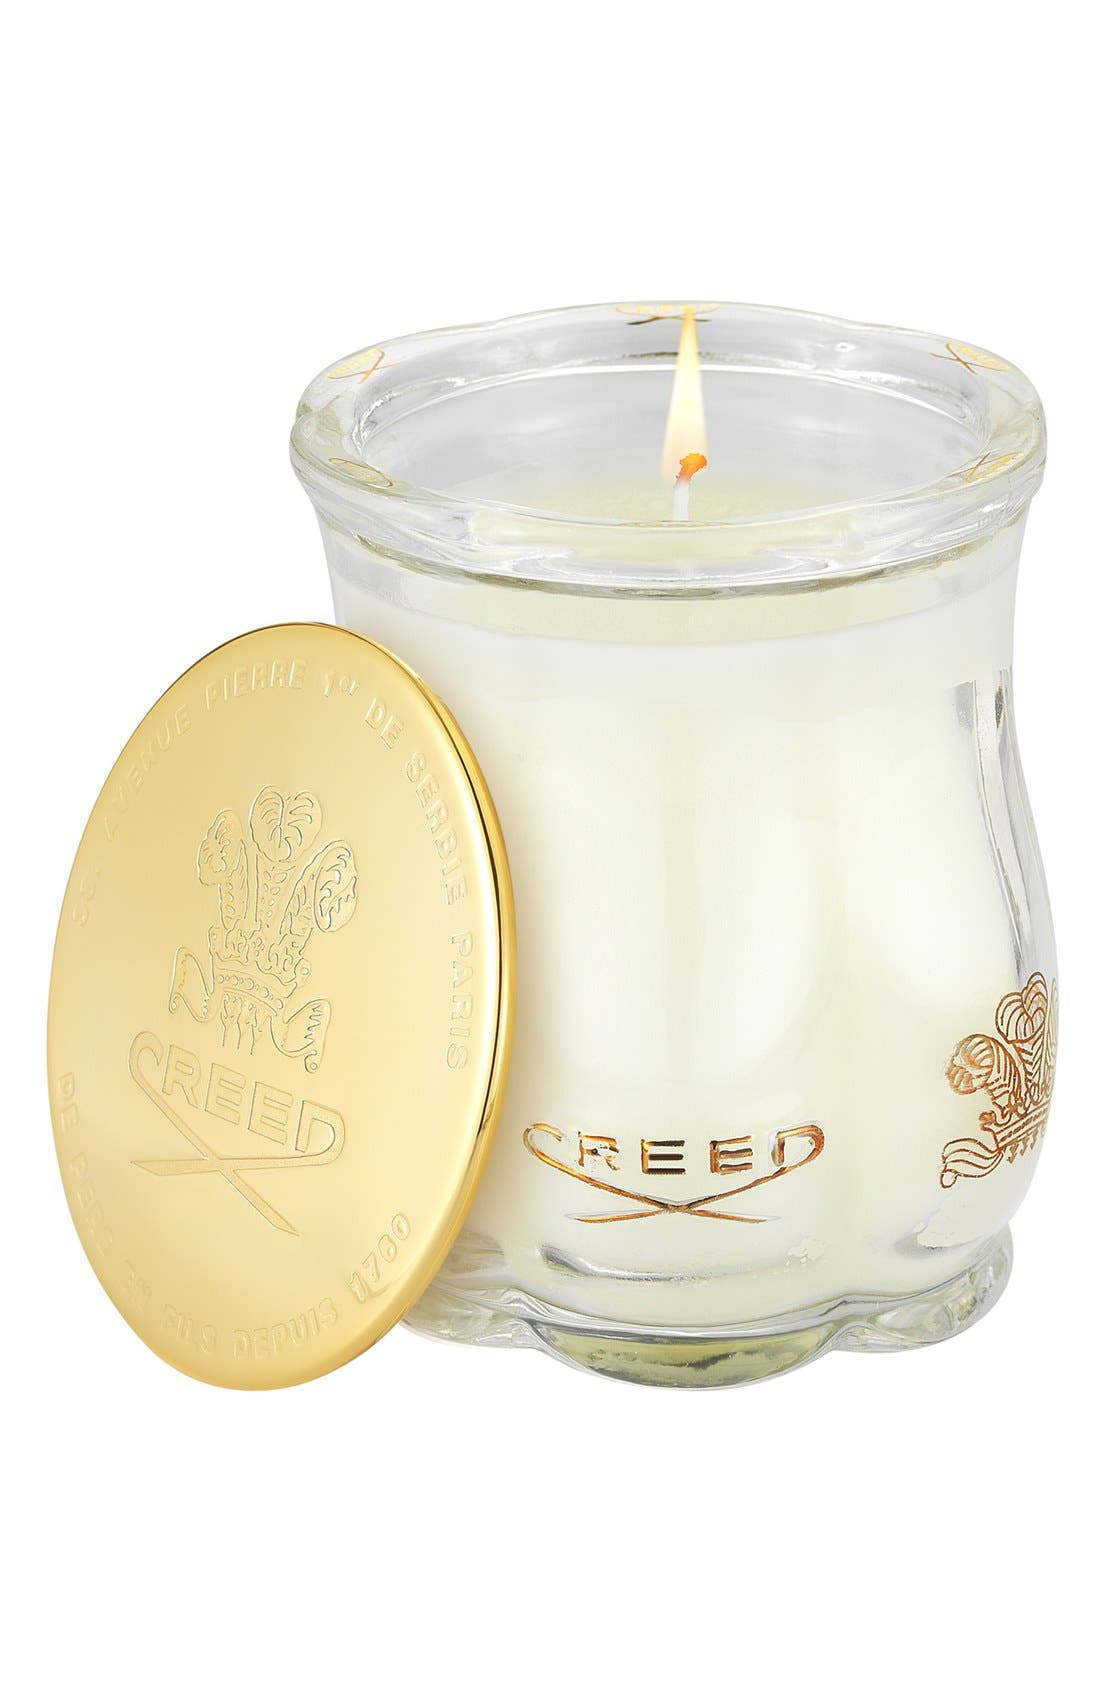 Main Image - Creed 'Spring Flower' Beeswax Candle